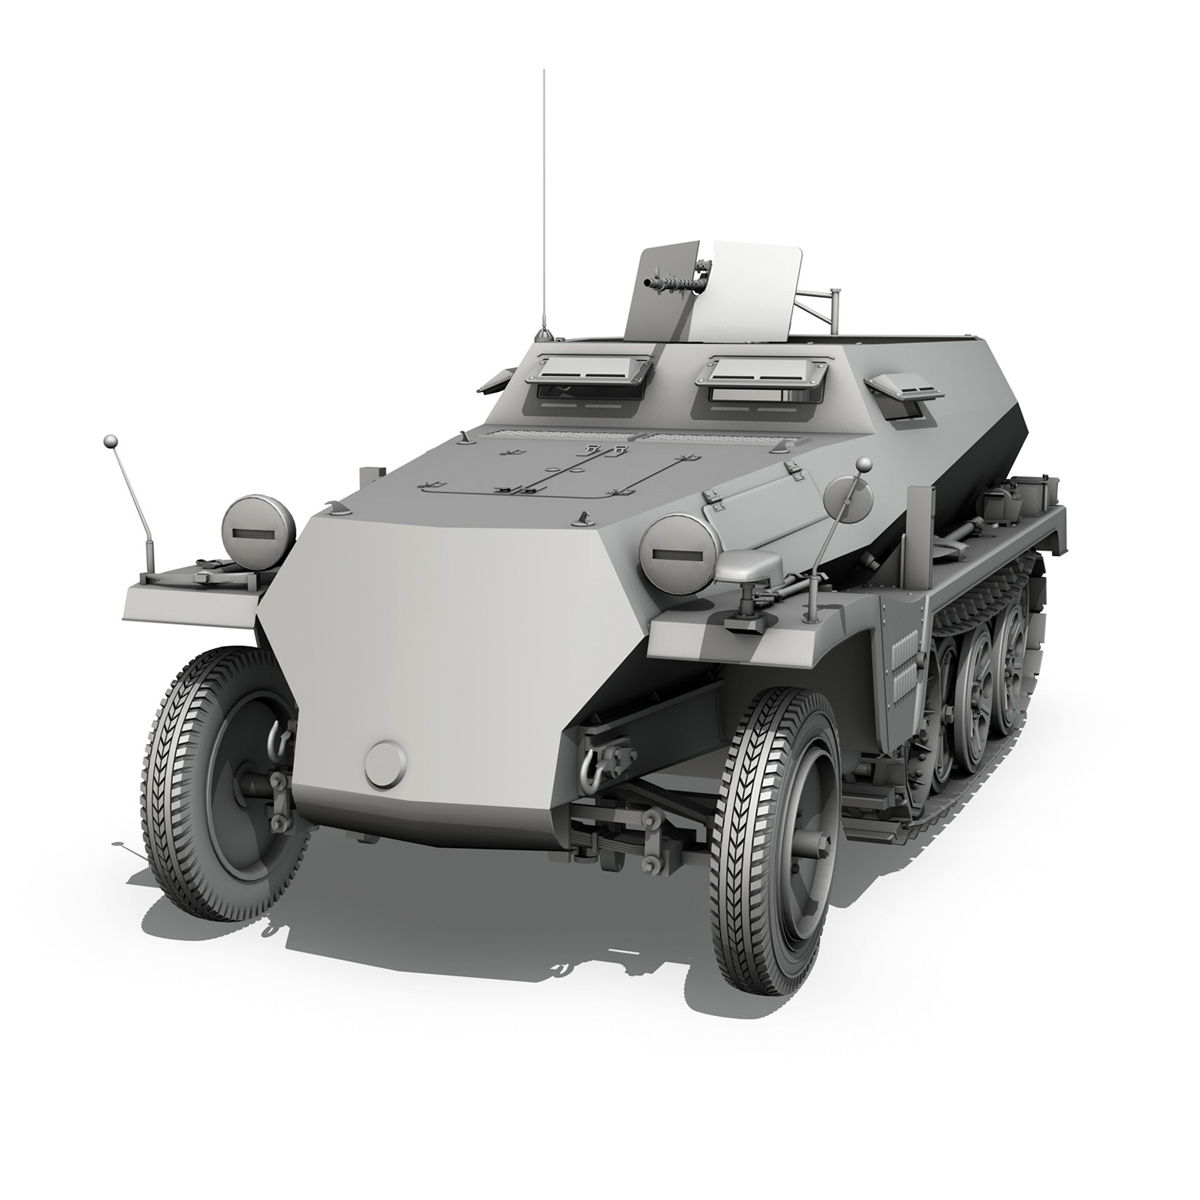 sd.kfz 250 – german halftruck 3d model 3ds fbx c4d lwo obj 251714